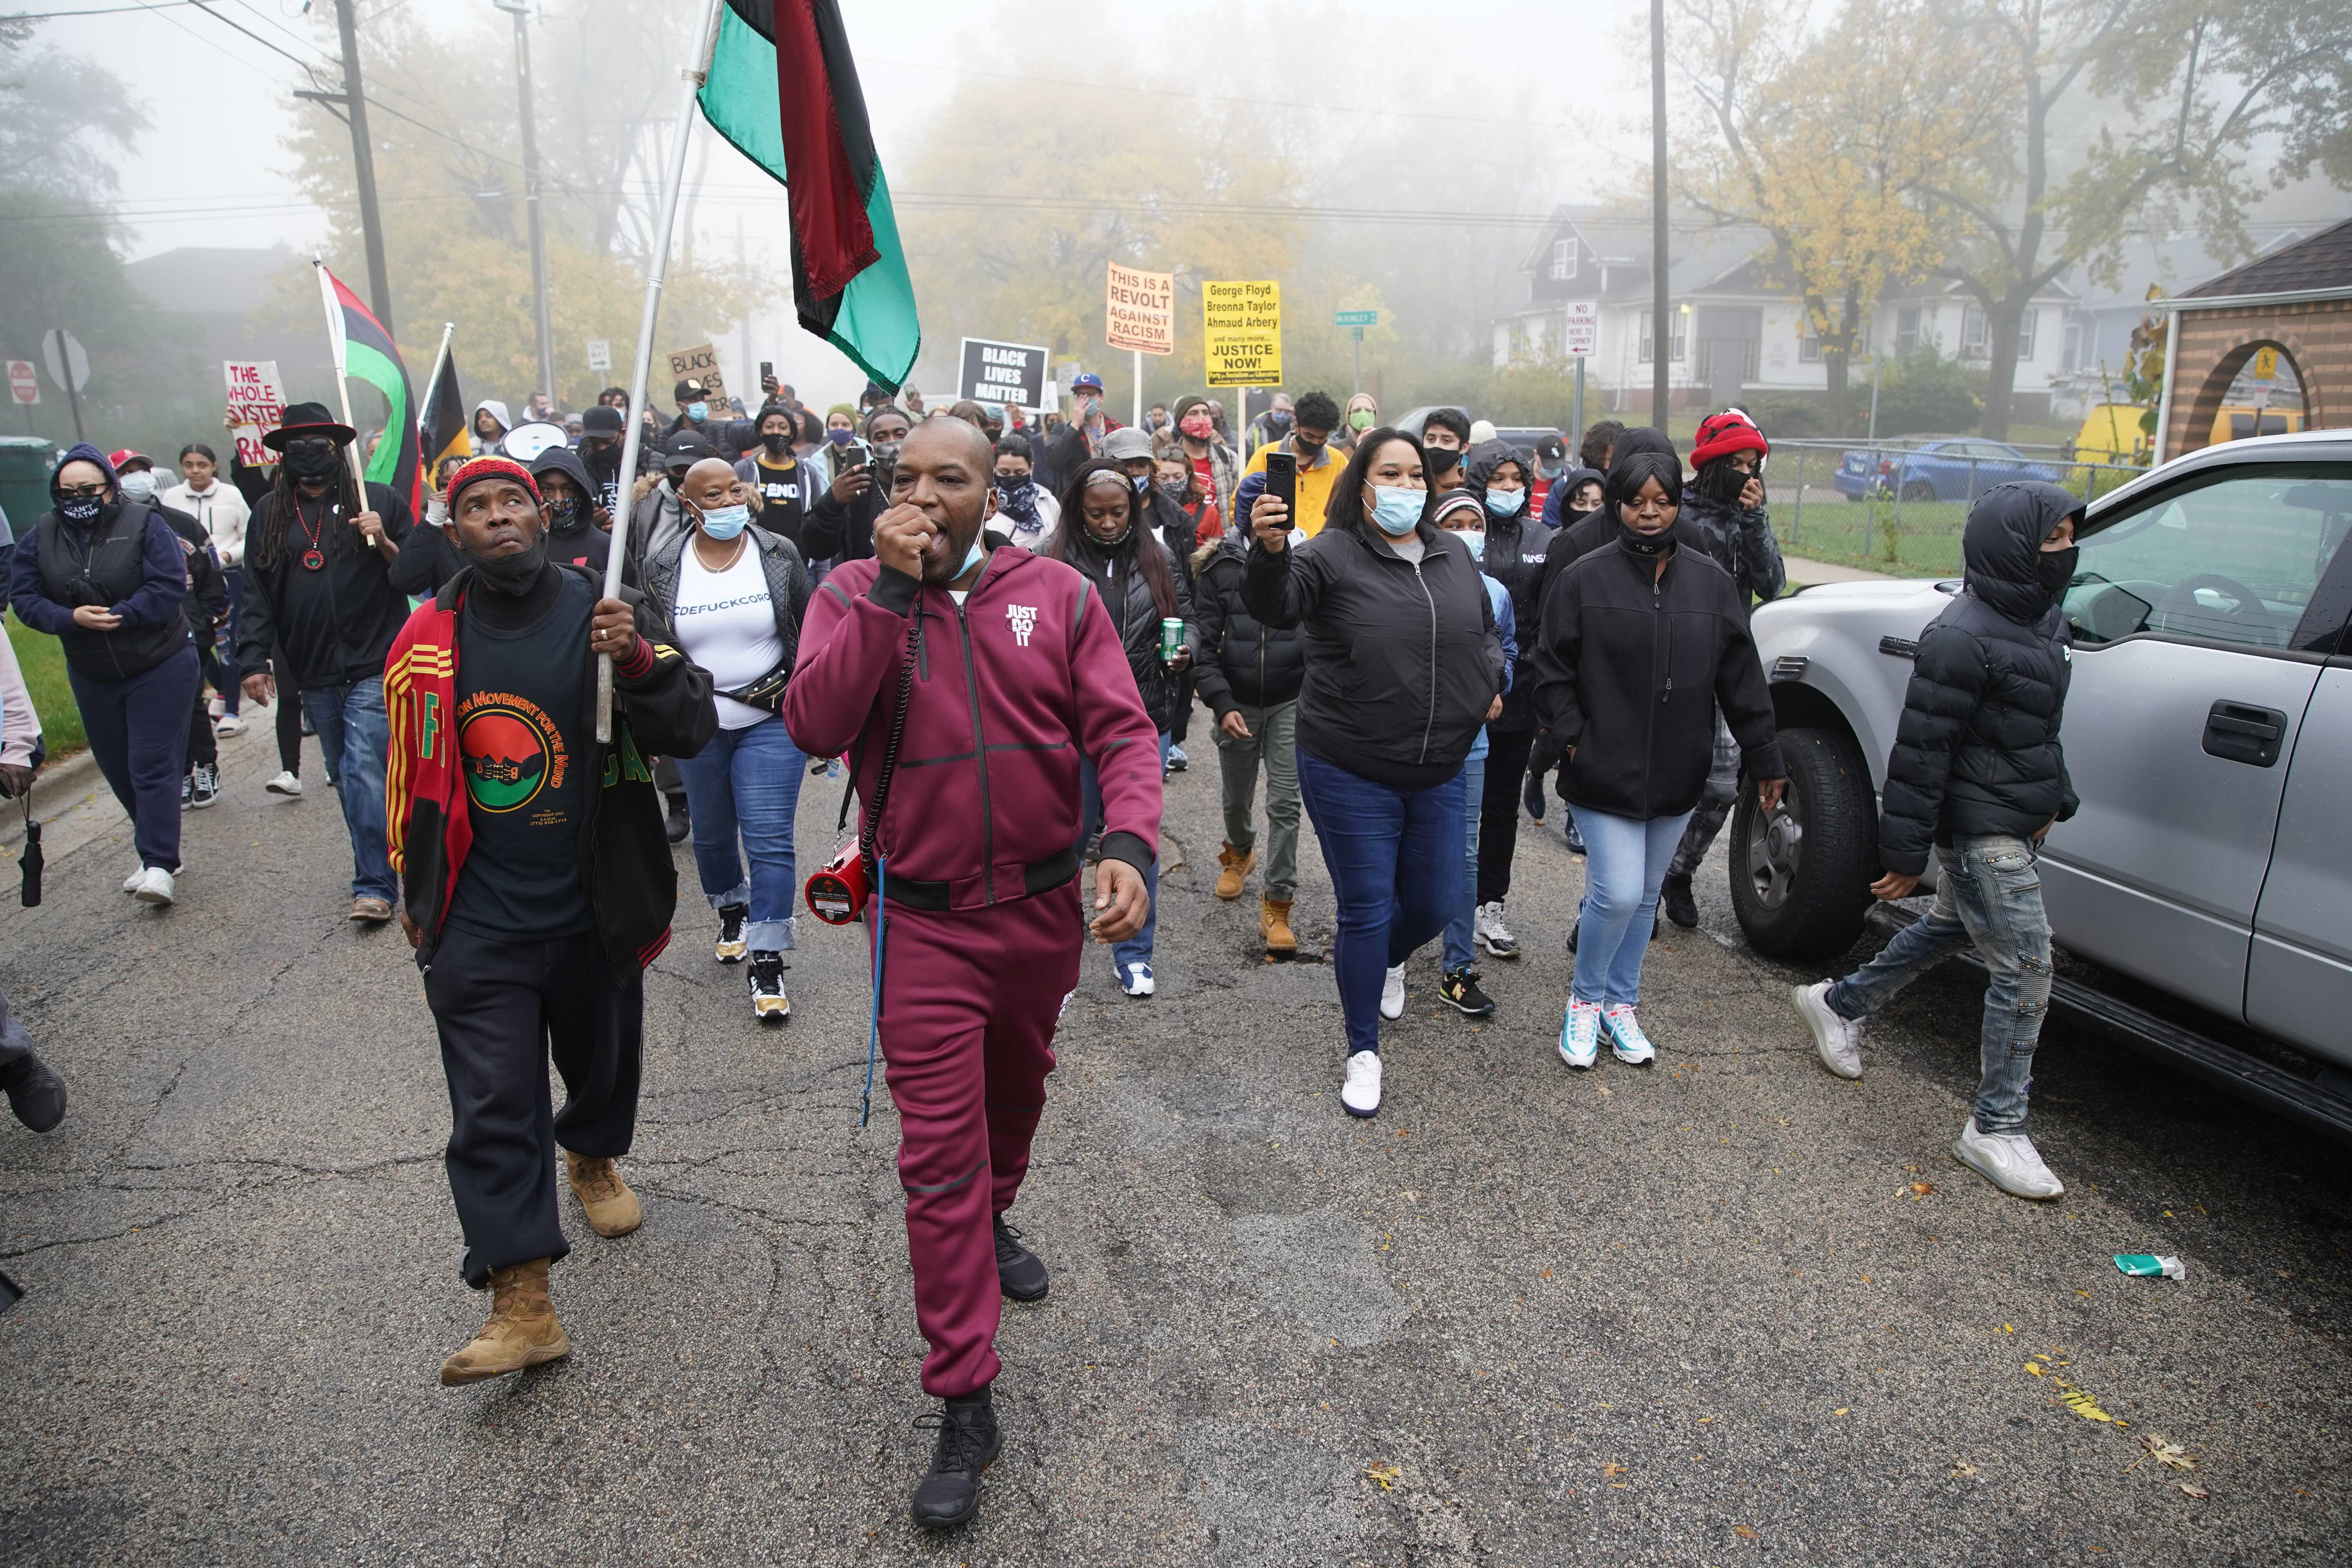 Rayon Edwards leads a chant and march during rally and protest against police brutality Thursday after Marcellis Stinnettte, 19, was fatality shot by police in Waukegan.